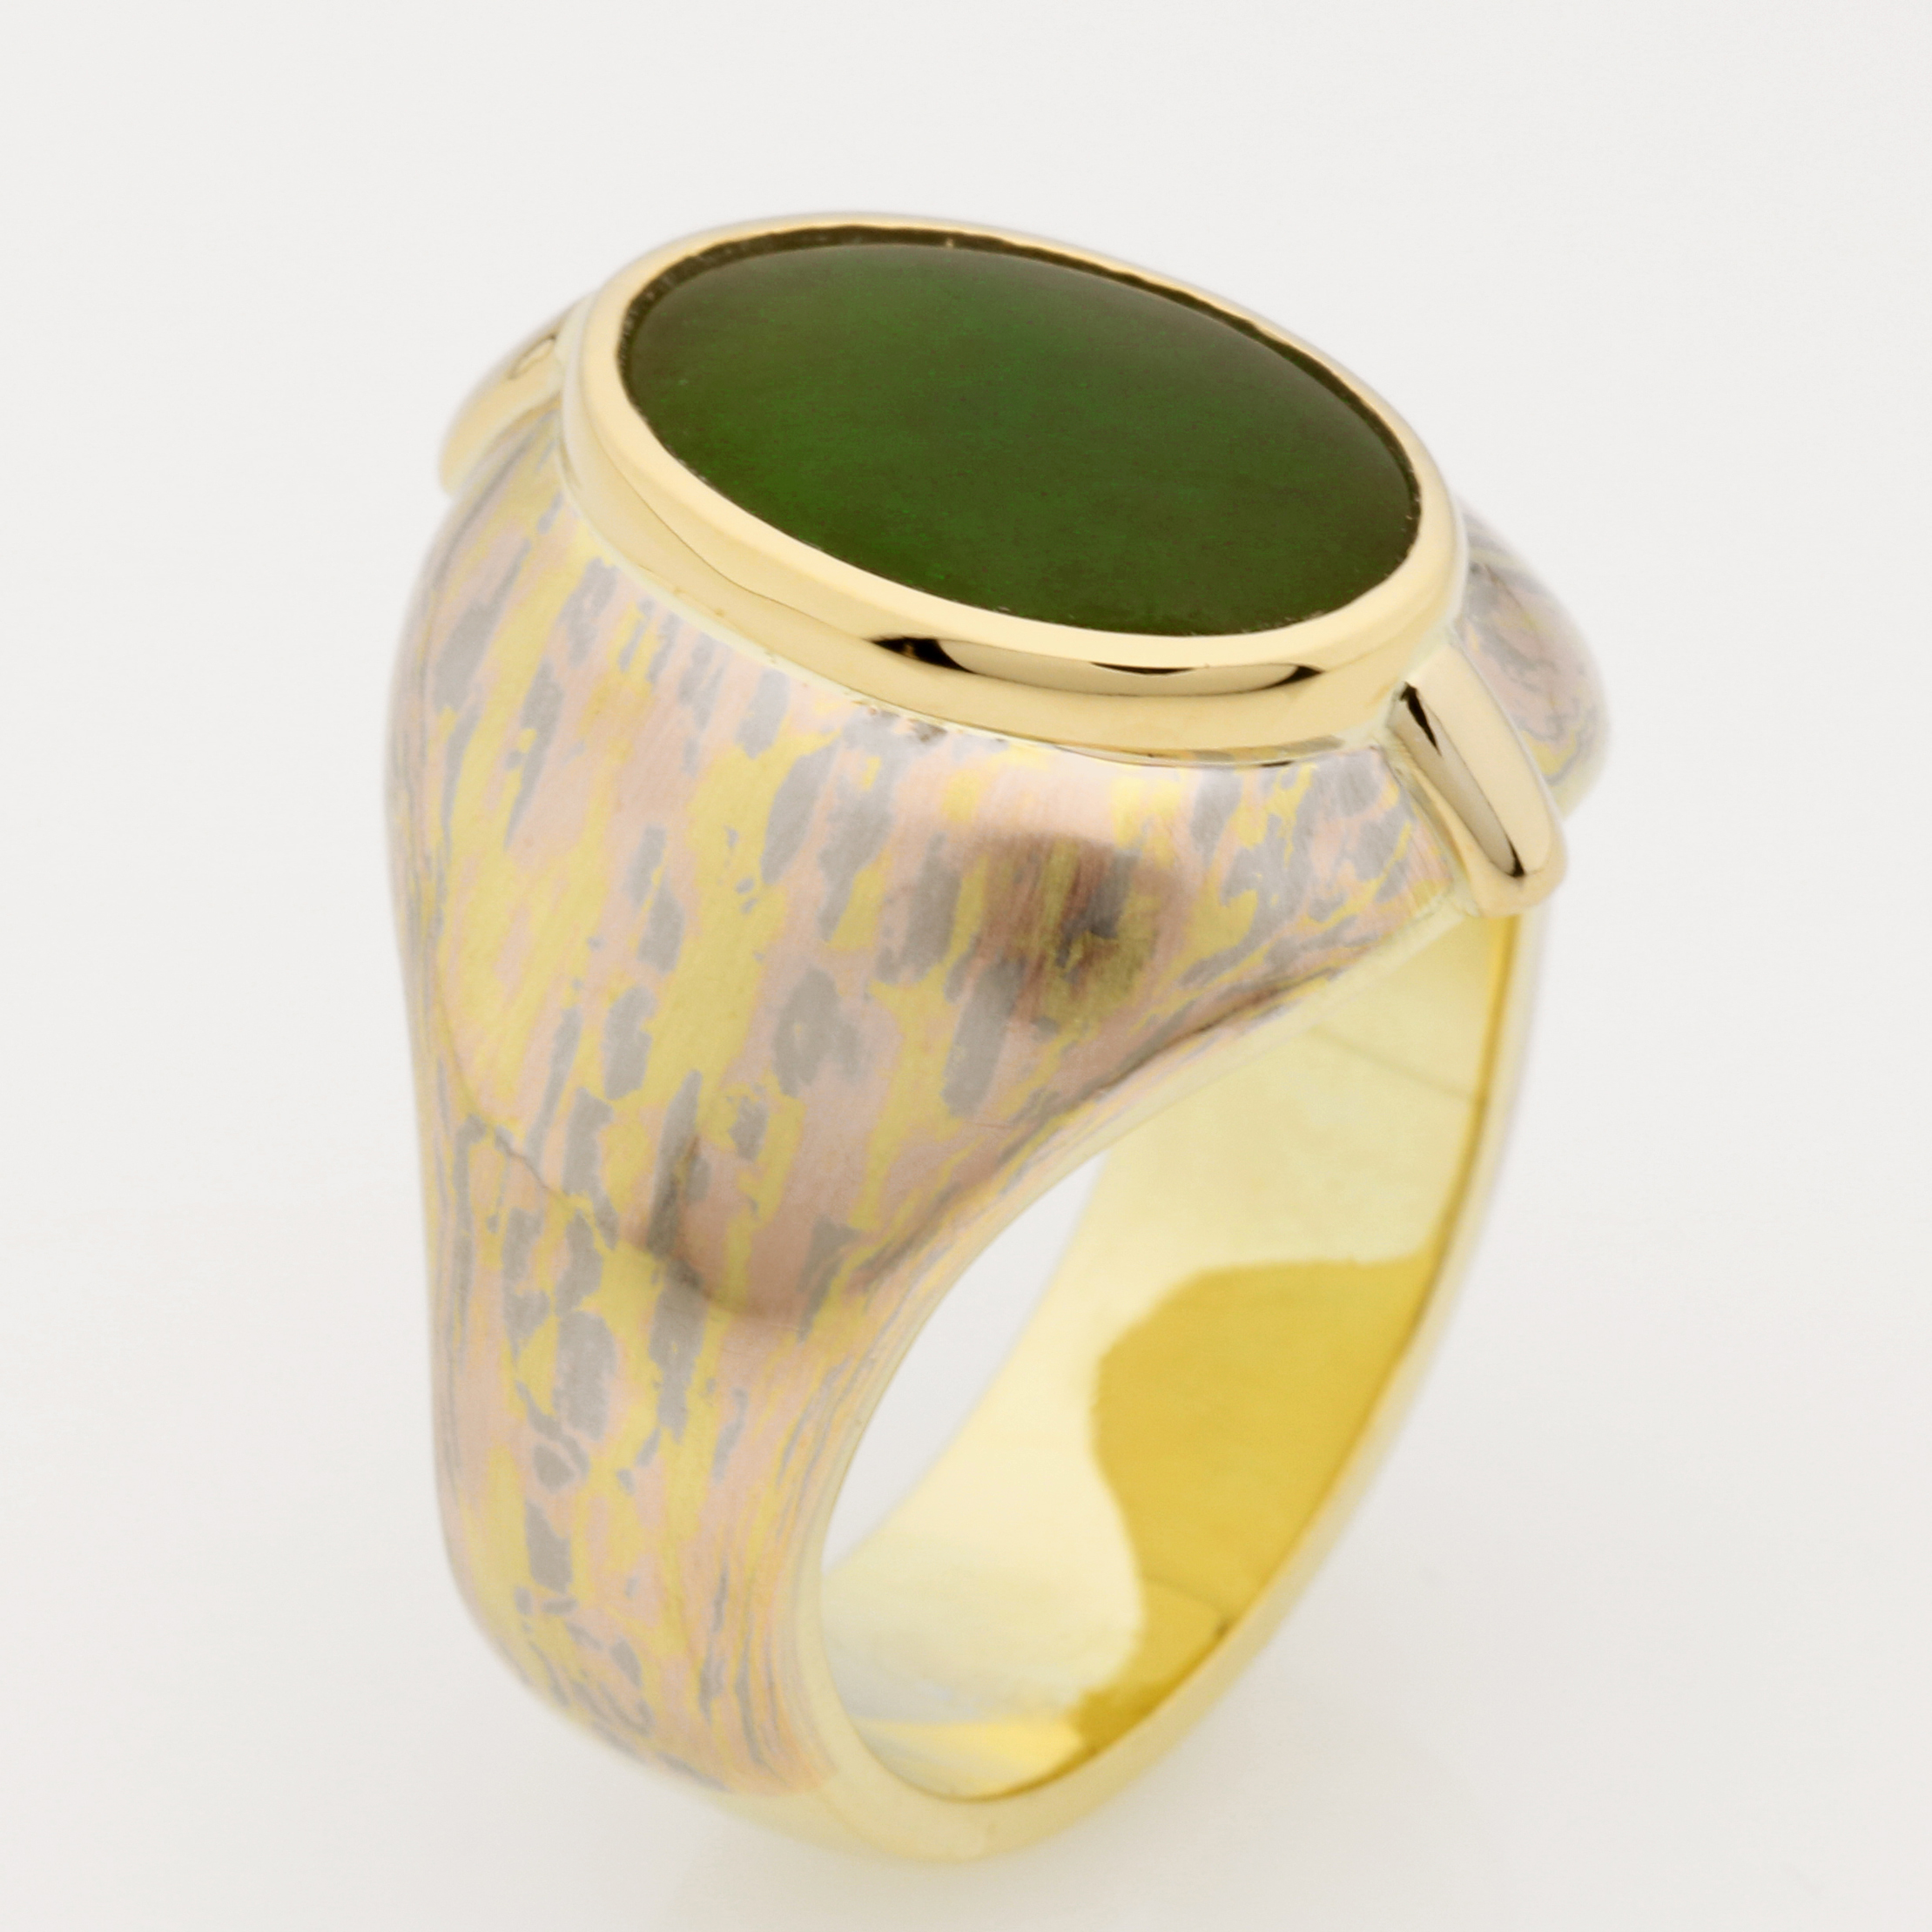 Mens Handmade 18ct Rose, White and Yellow Marbled Gold, 14ct Yellow gold and Nephrite Jade (Olive Green variety) Signet Ring.